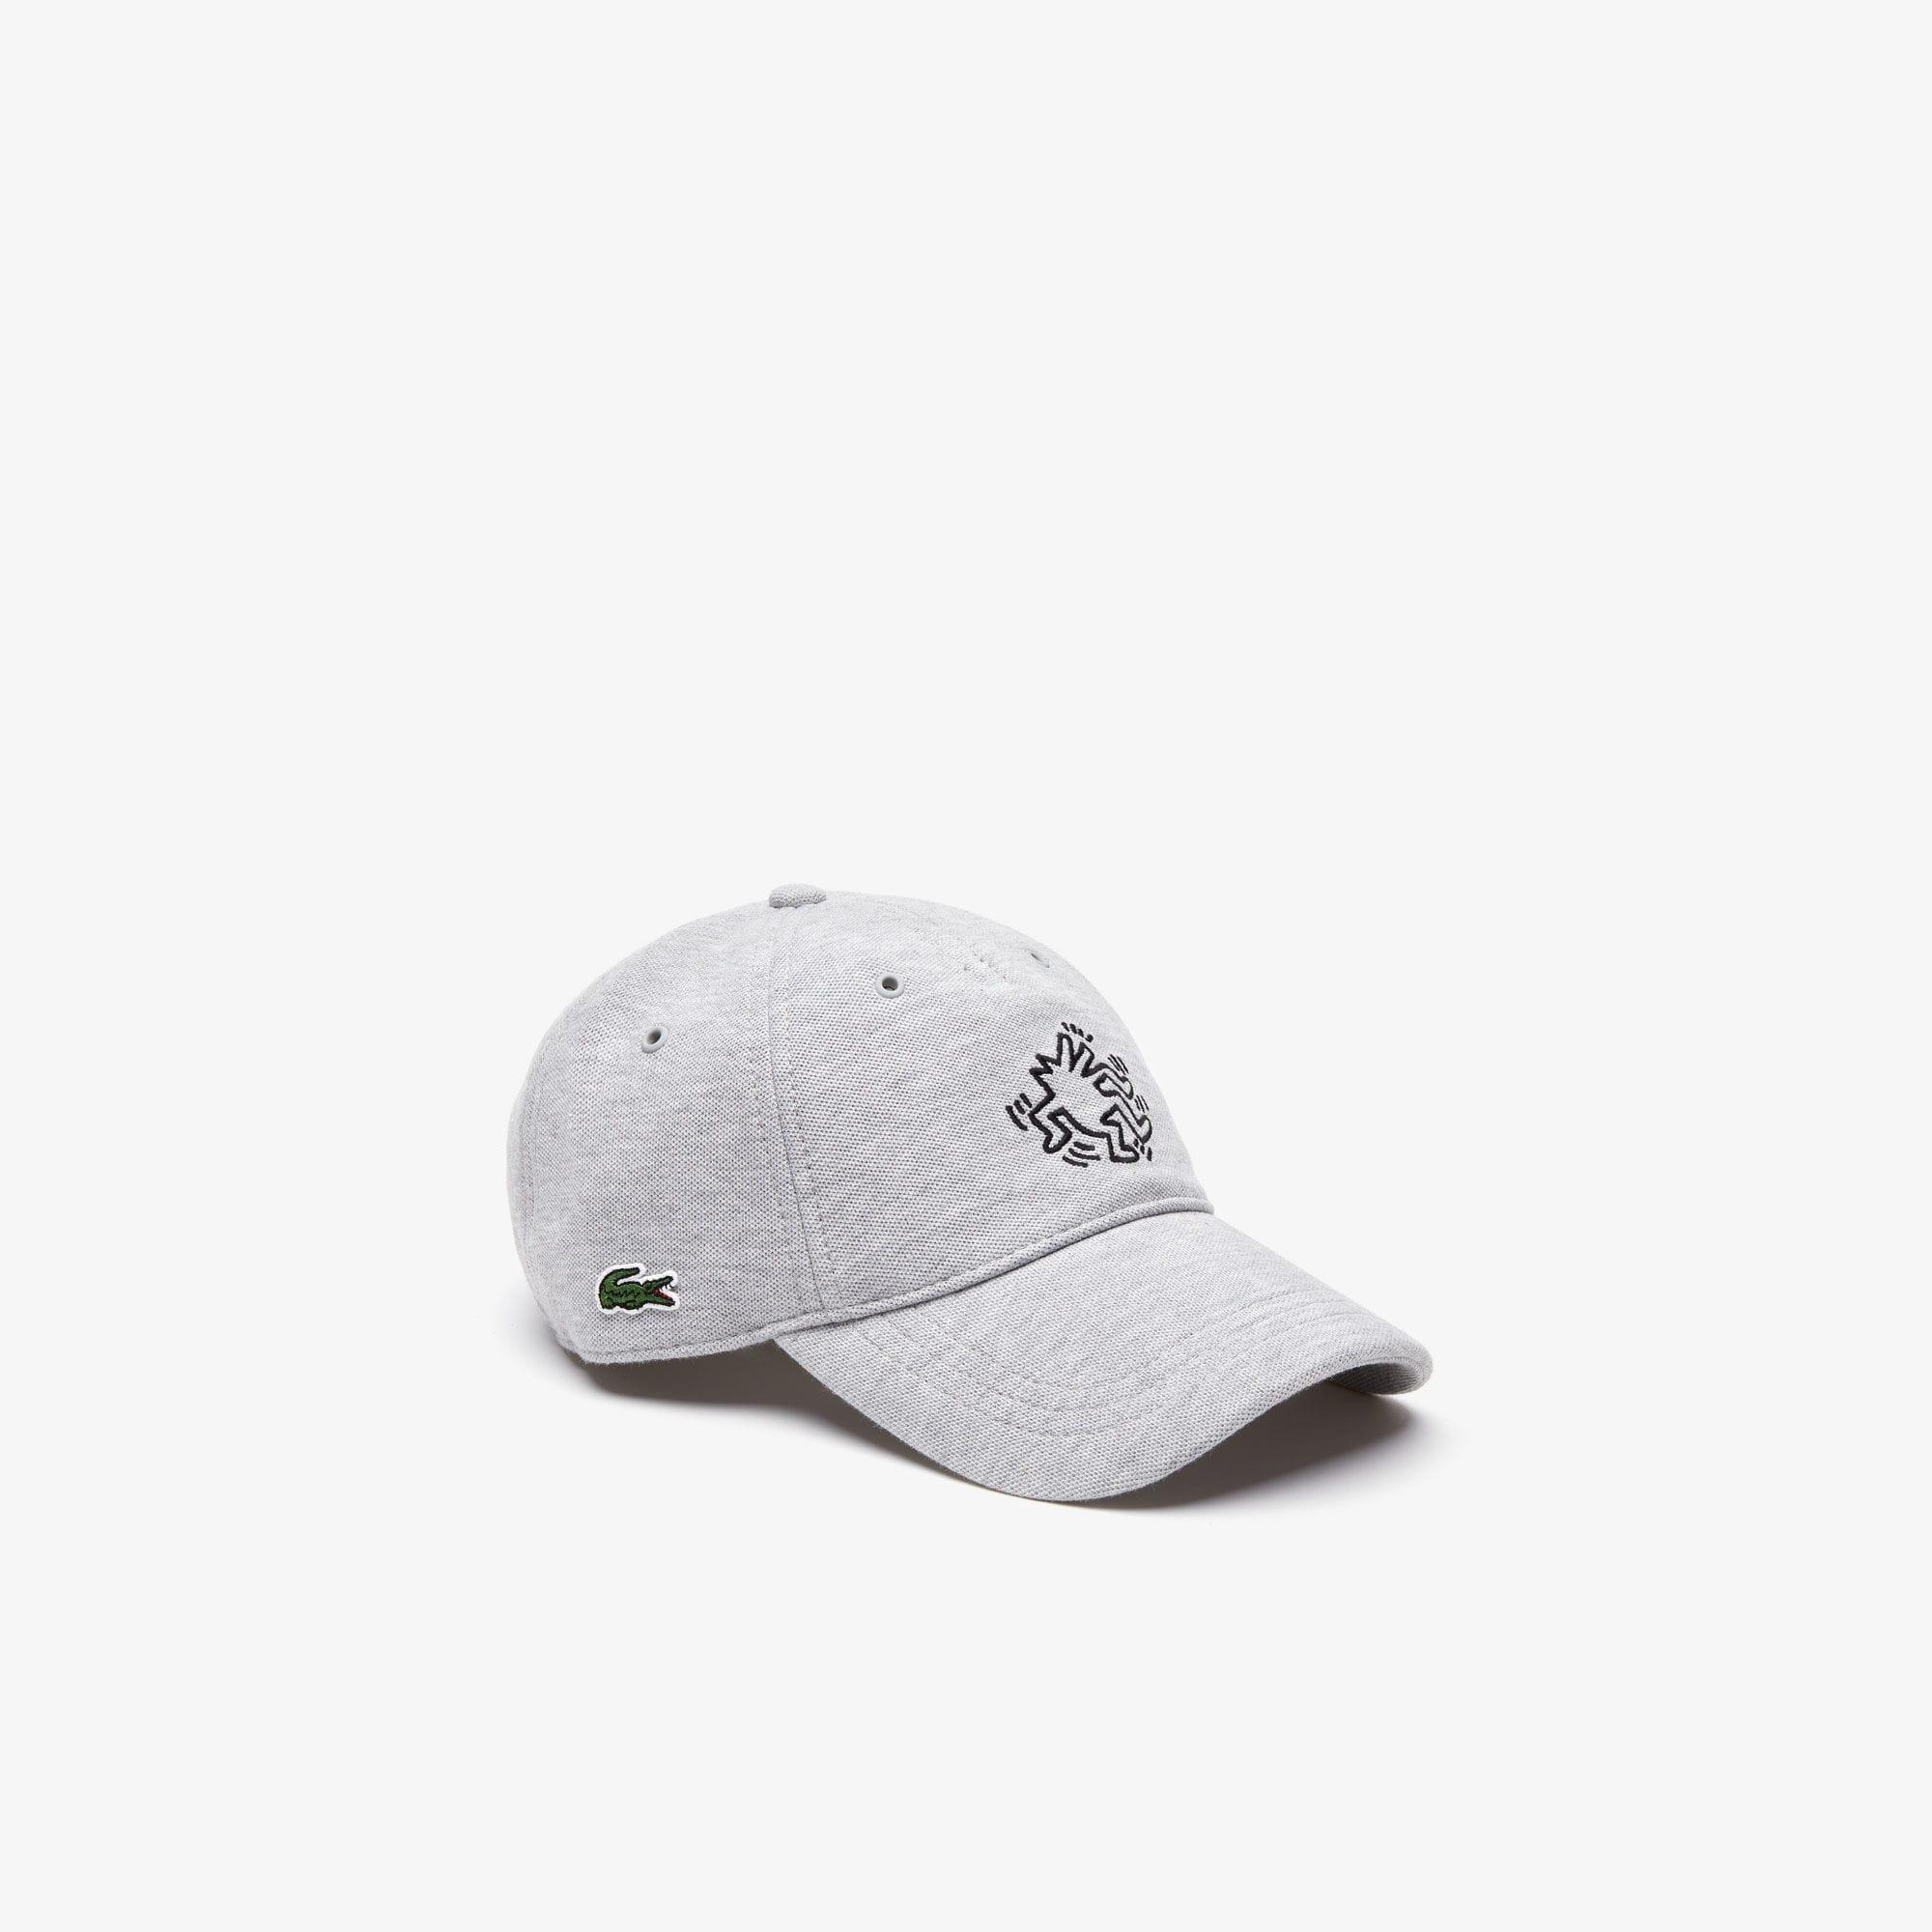 e2ffb8cad80 Lyst - Lacoste Keith Haring Embroidered Cotton Cap in Gray for Men